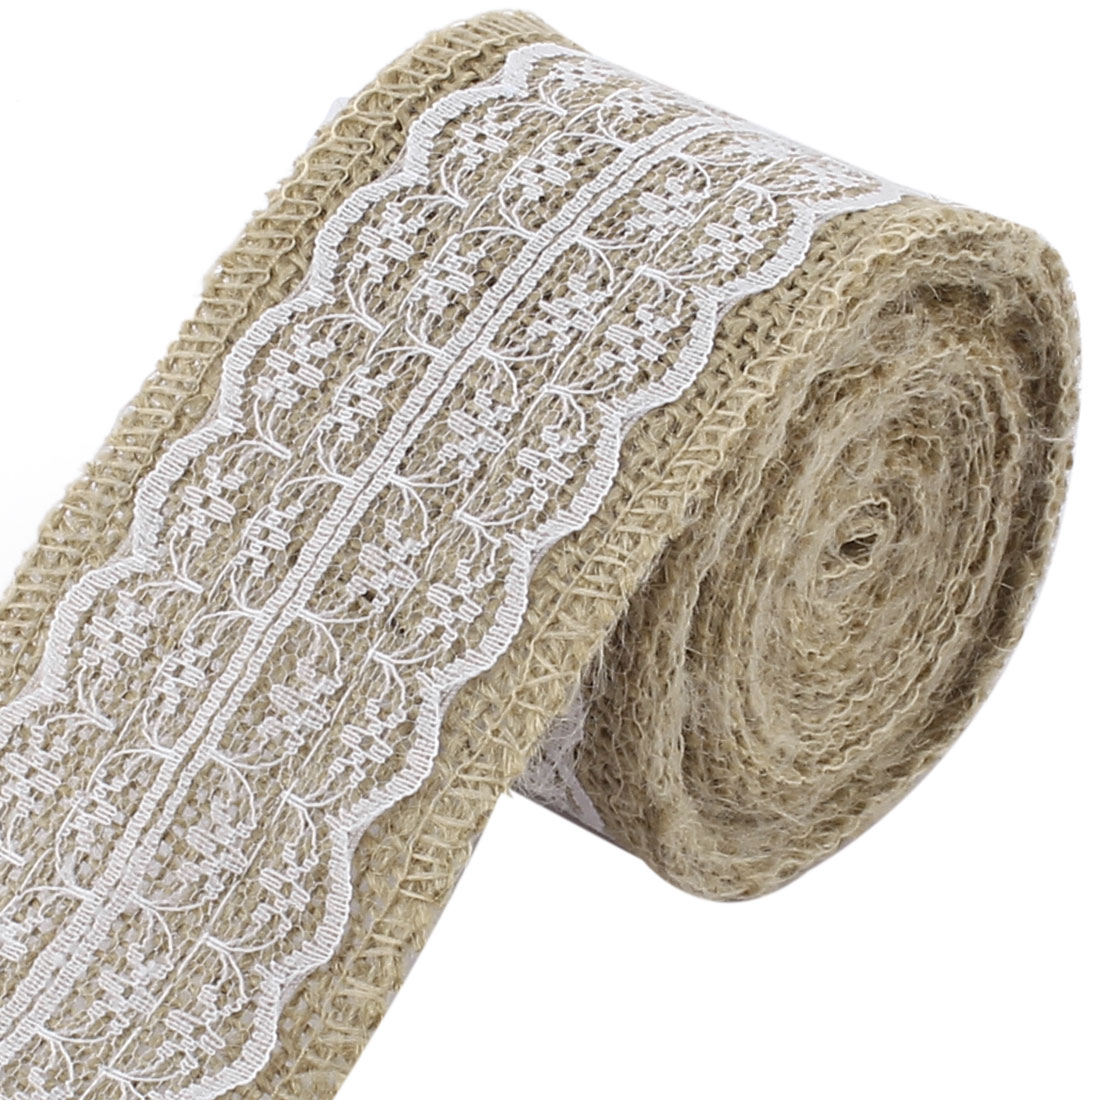 Unique Bargains Christmas Burlap DIY Gift Wrapping Packing Ornament Craft Ribbon Roll Tape White